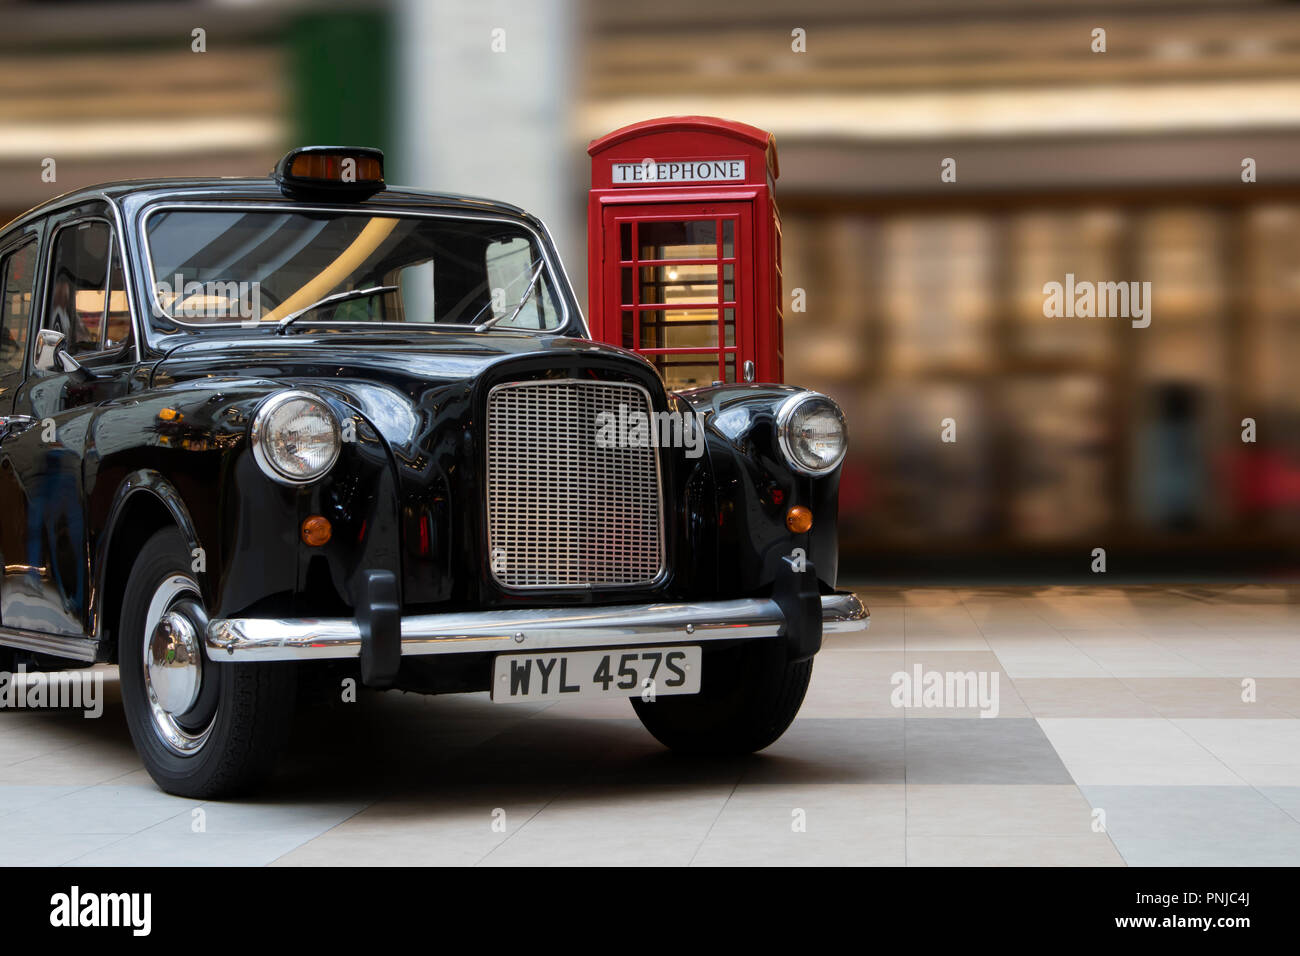 Luxurious old retro automobile and vintage red call box exhibited in a large hall of big moll - Stock Image